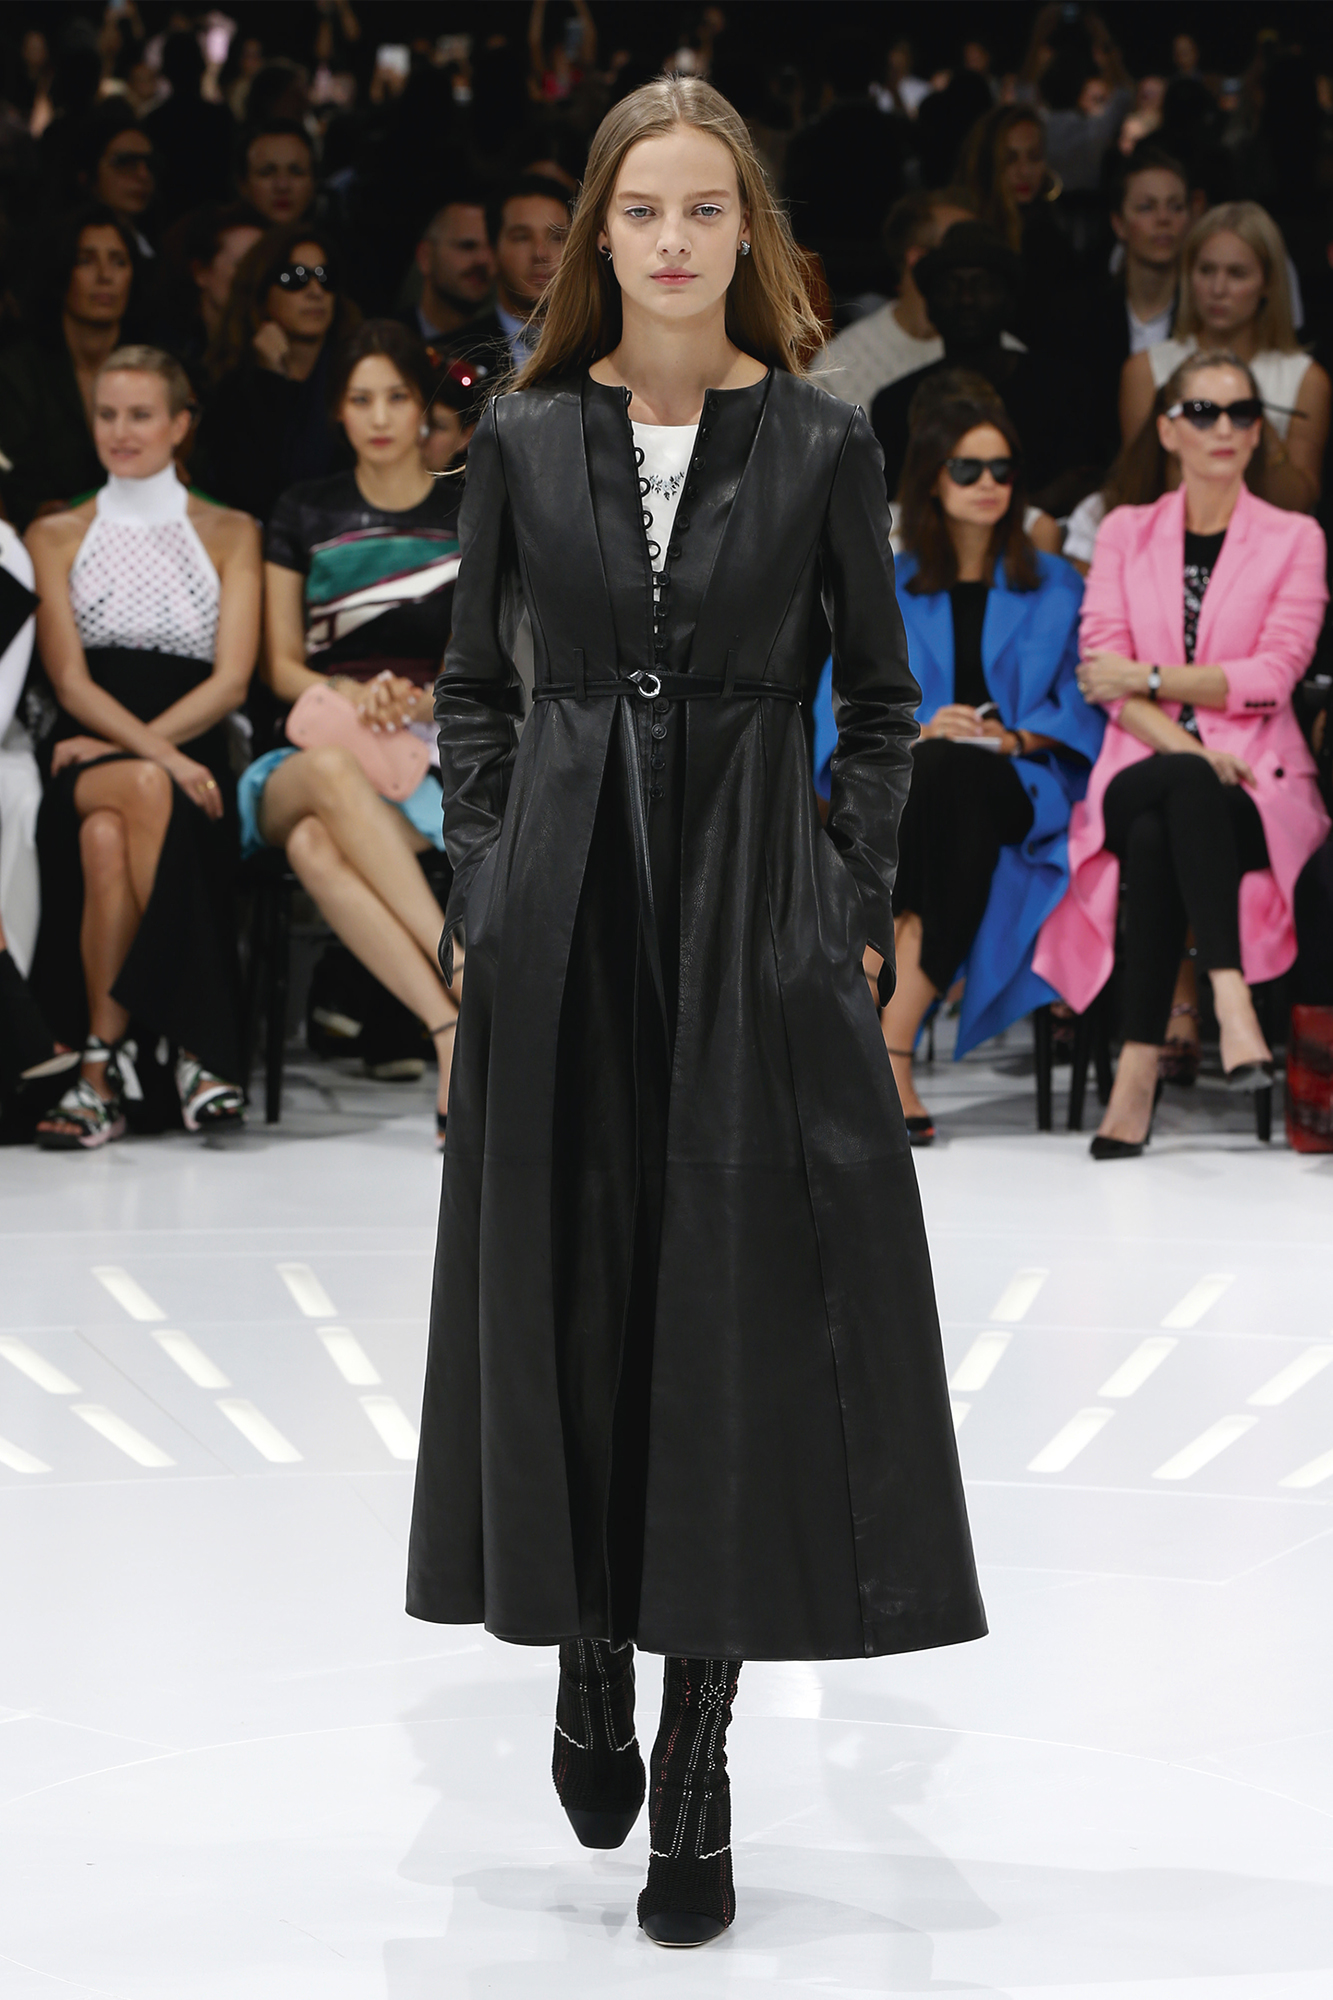 New Western Fashion Christian Dior Ready To Wear Dresses Spring Summer Collection 2015 (14)